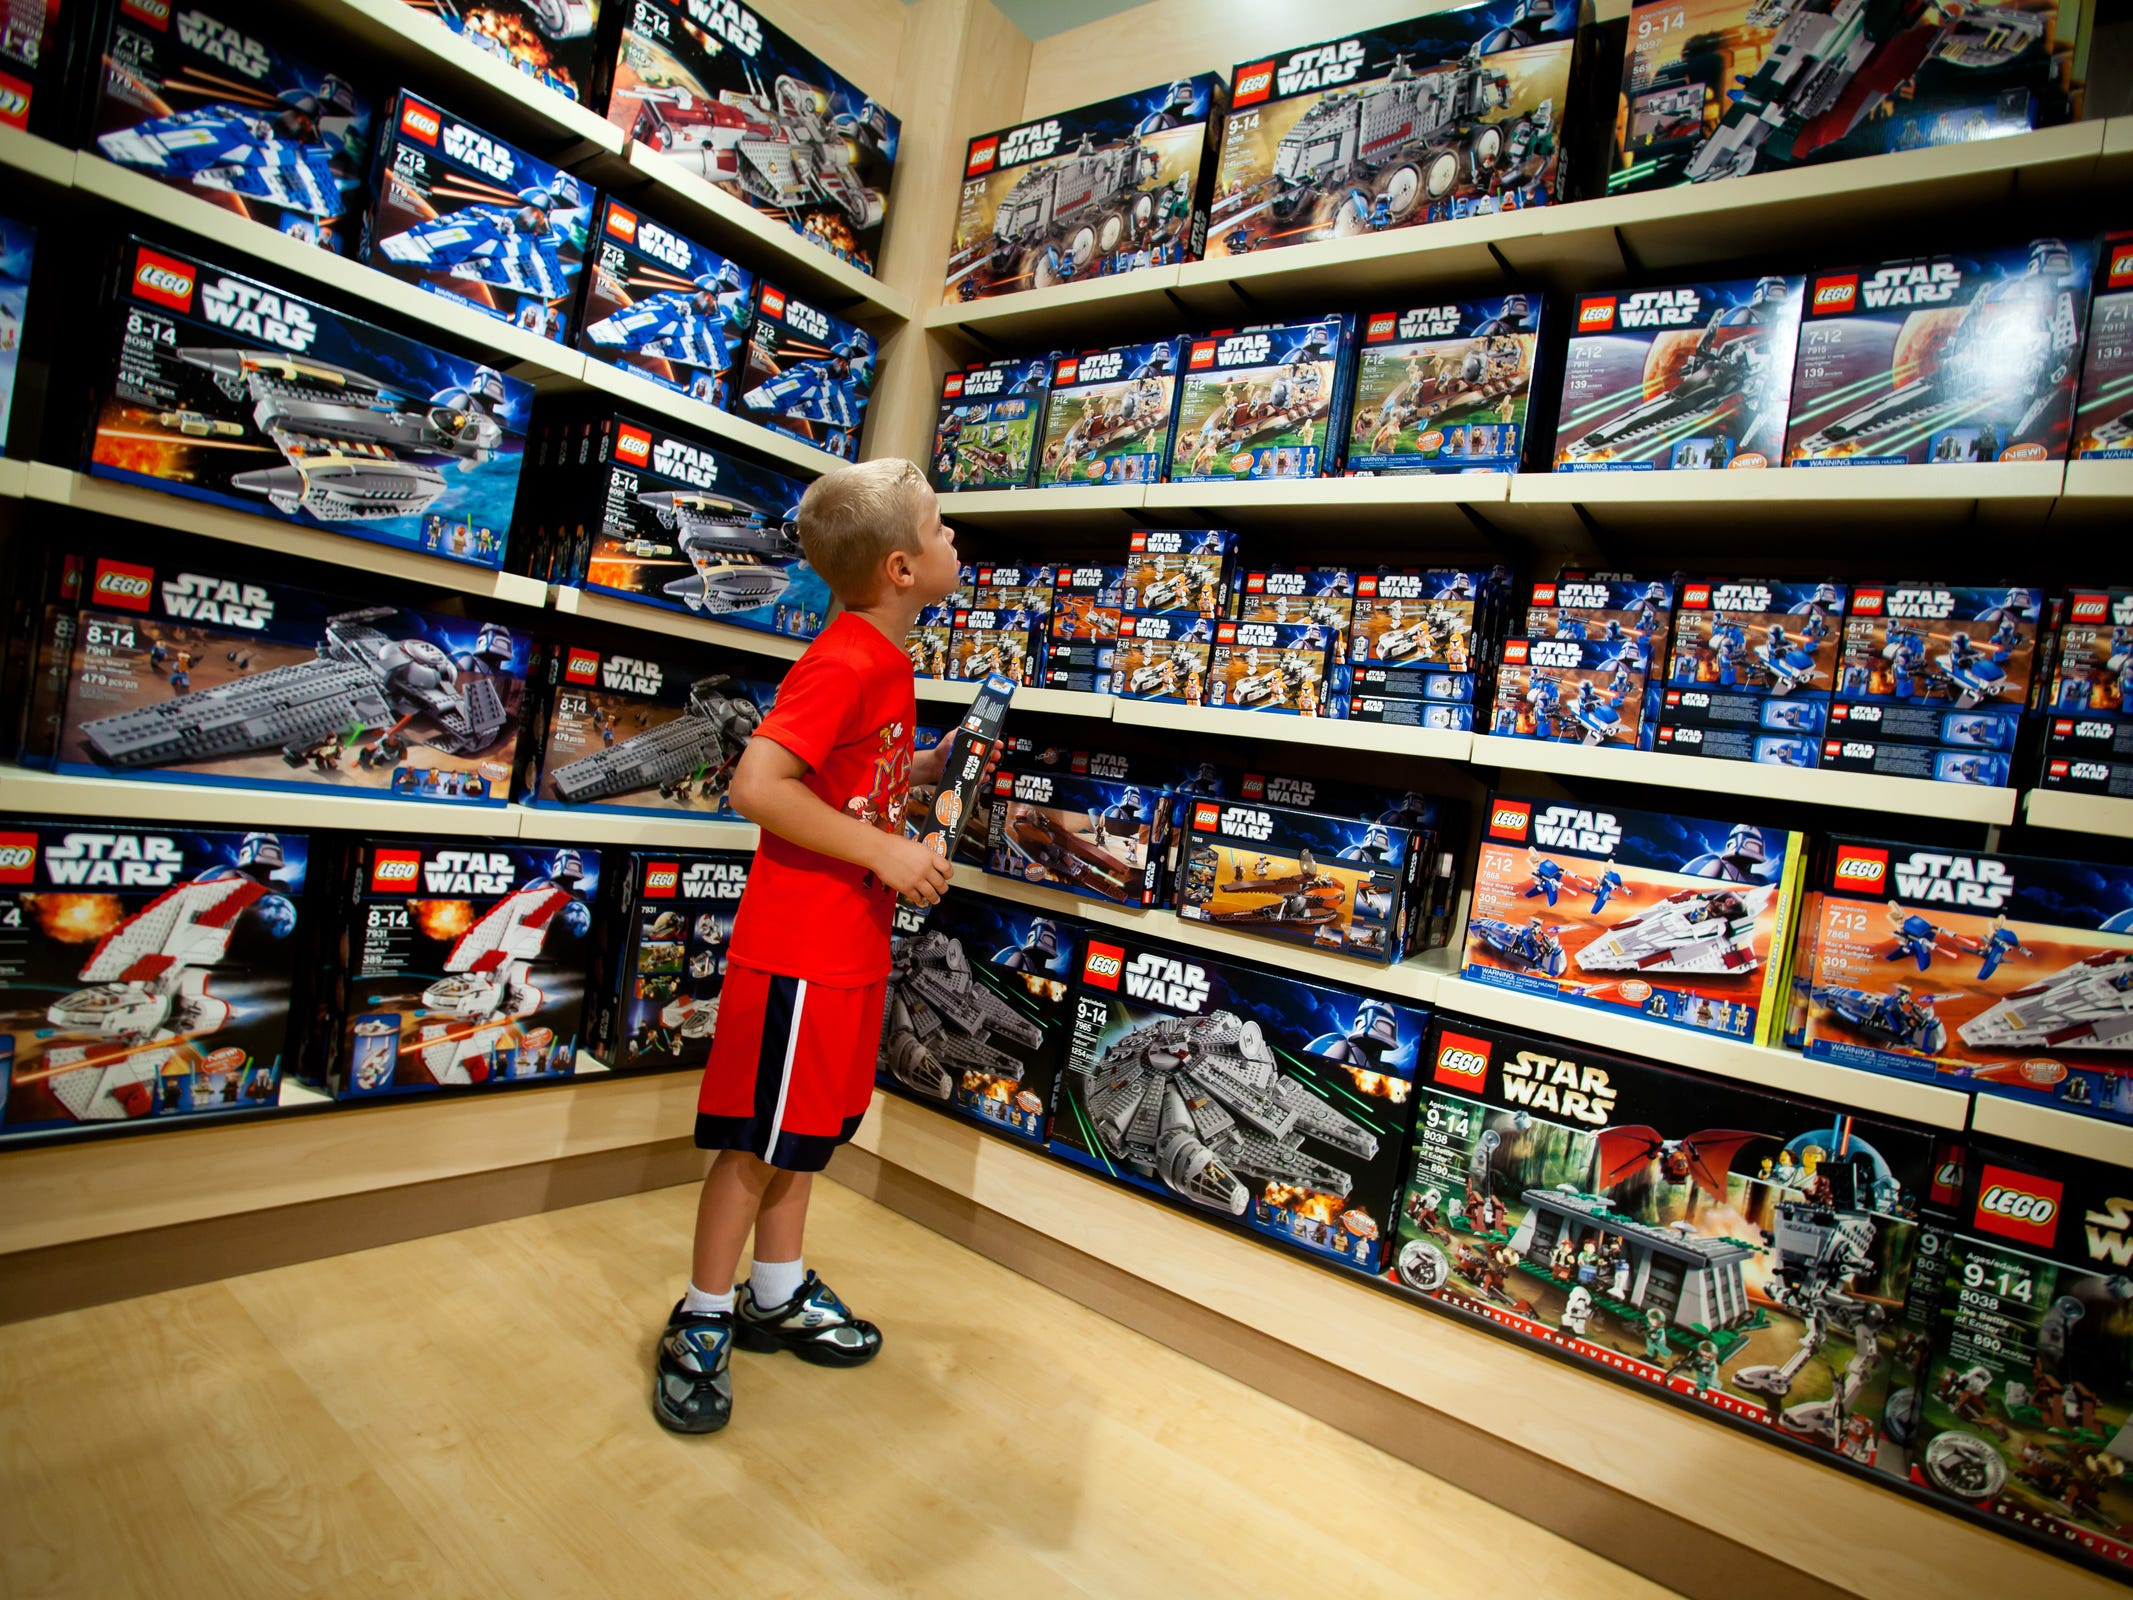 Visitors to Legoland Florida looking to score even the most obscure Lego sets will not be disappointed. The park's ubiquitous retail shops stock nearly every conceivable collection.